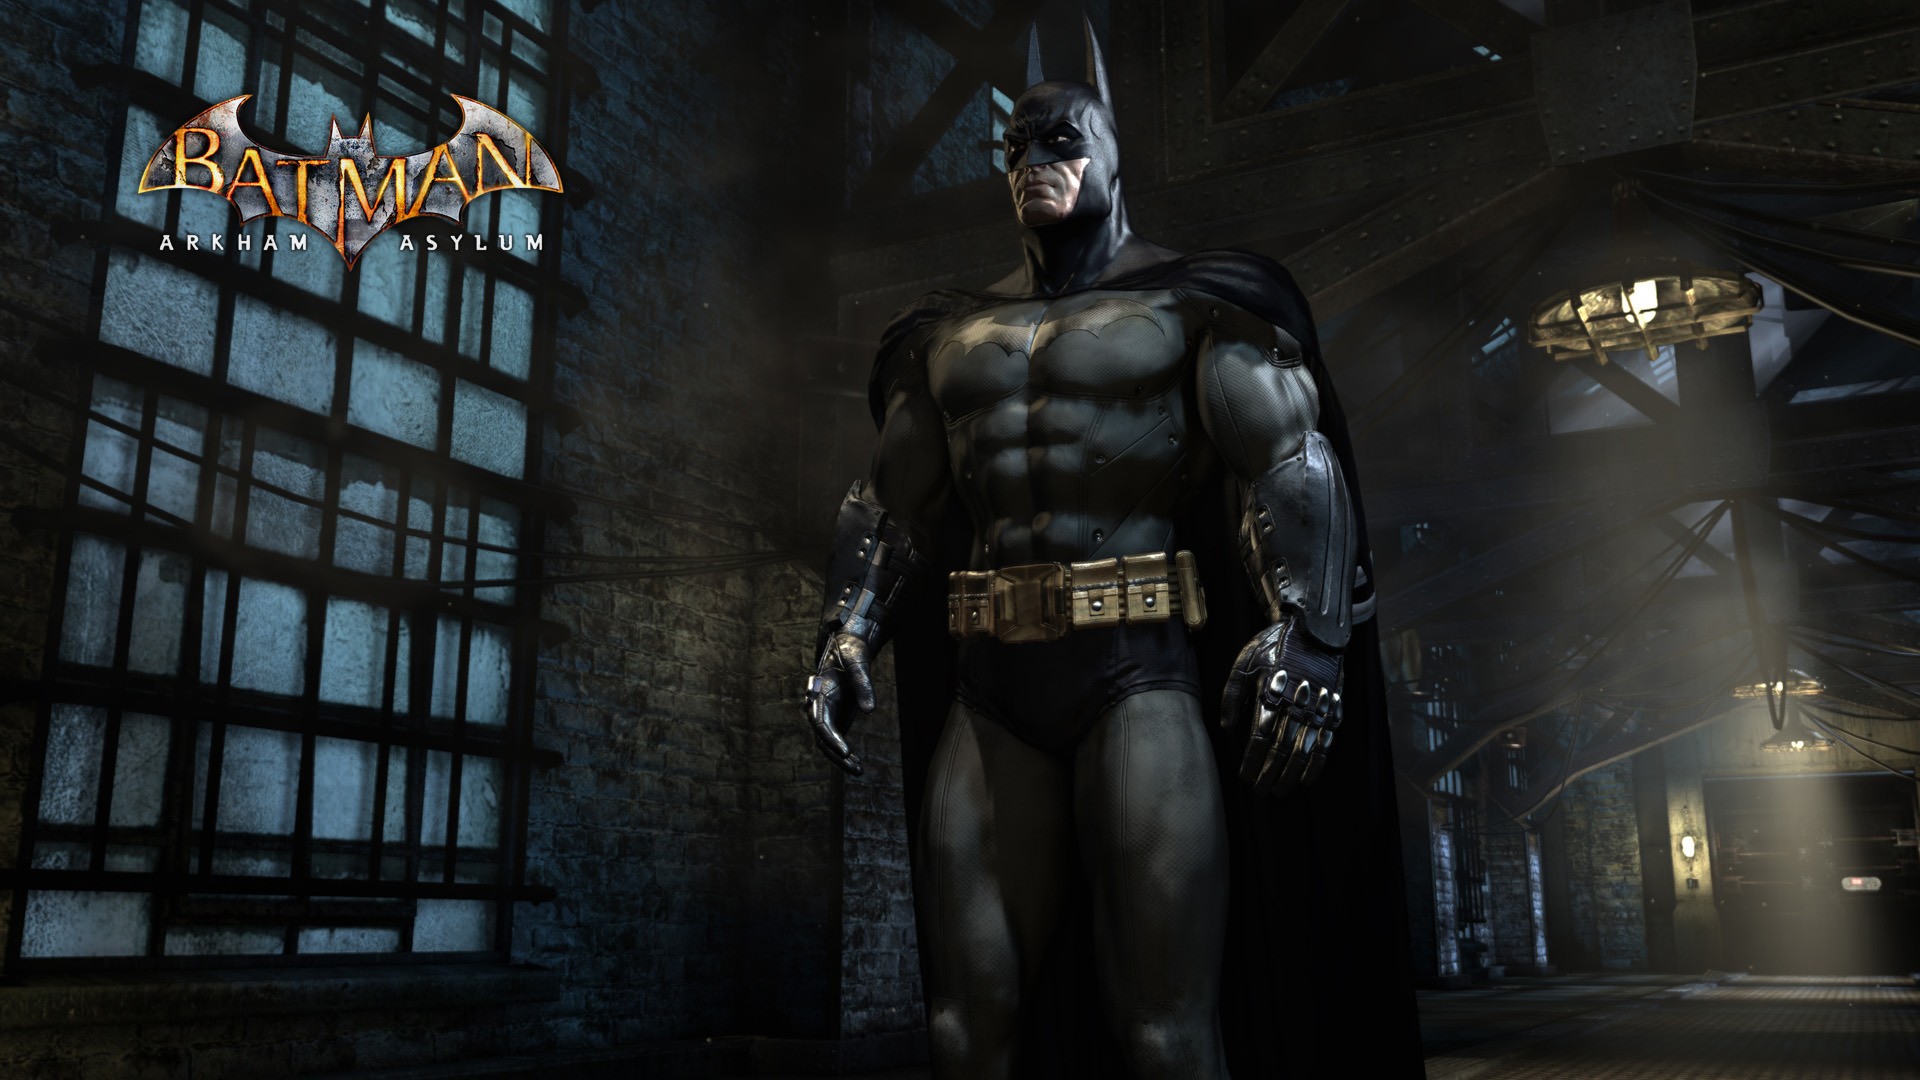 Batman Arkham Asylum HD Wallpaper 1920x1080